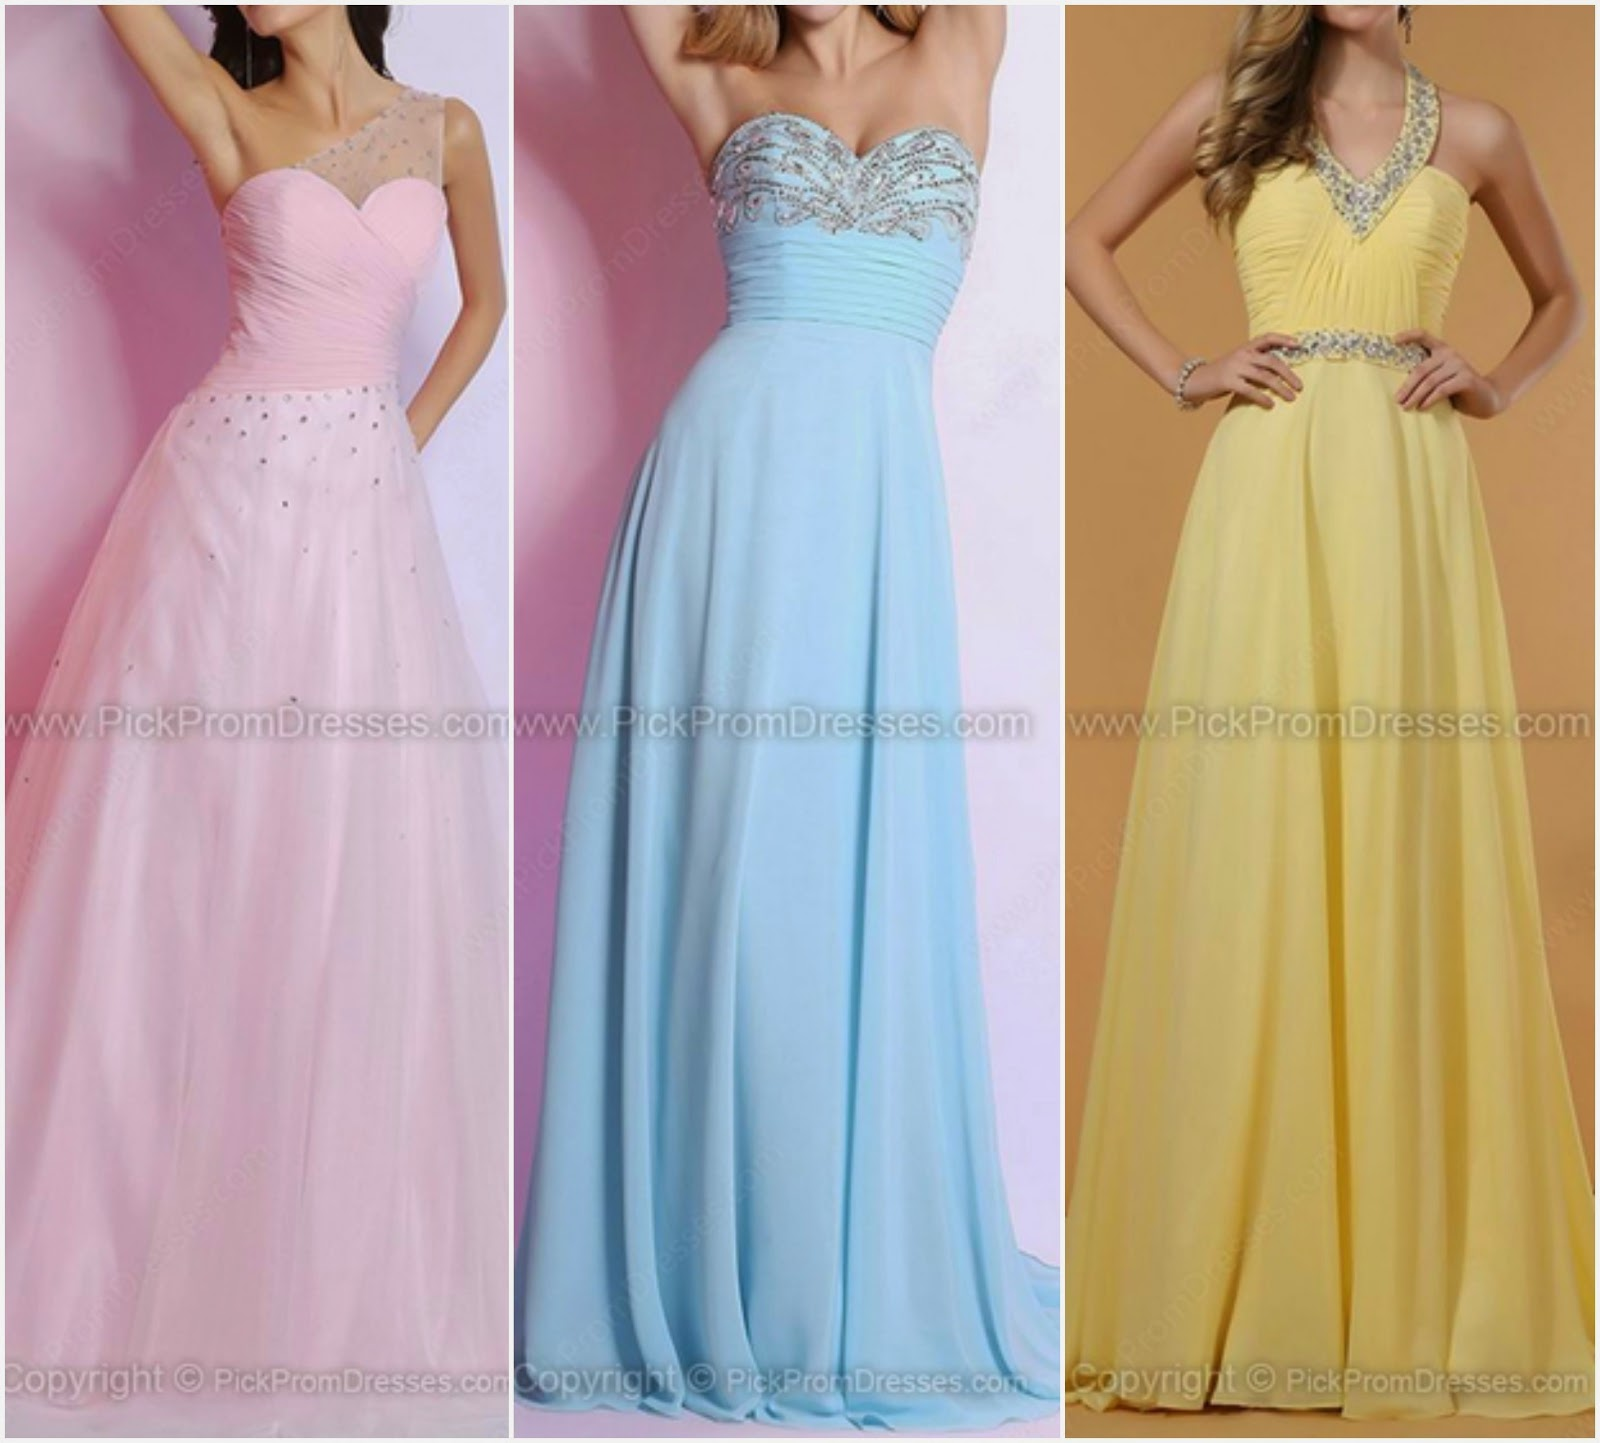 Prom Dresses Trinidad and Tobago